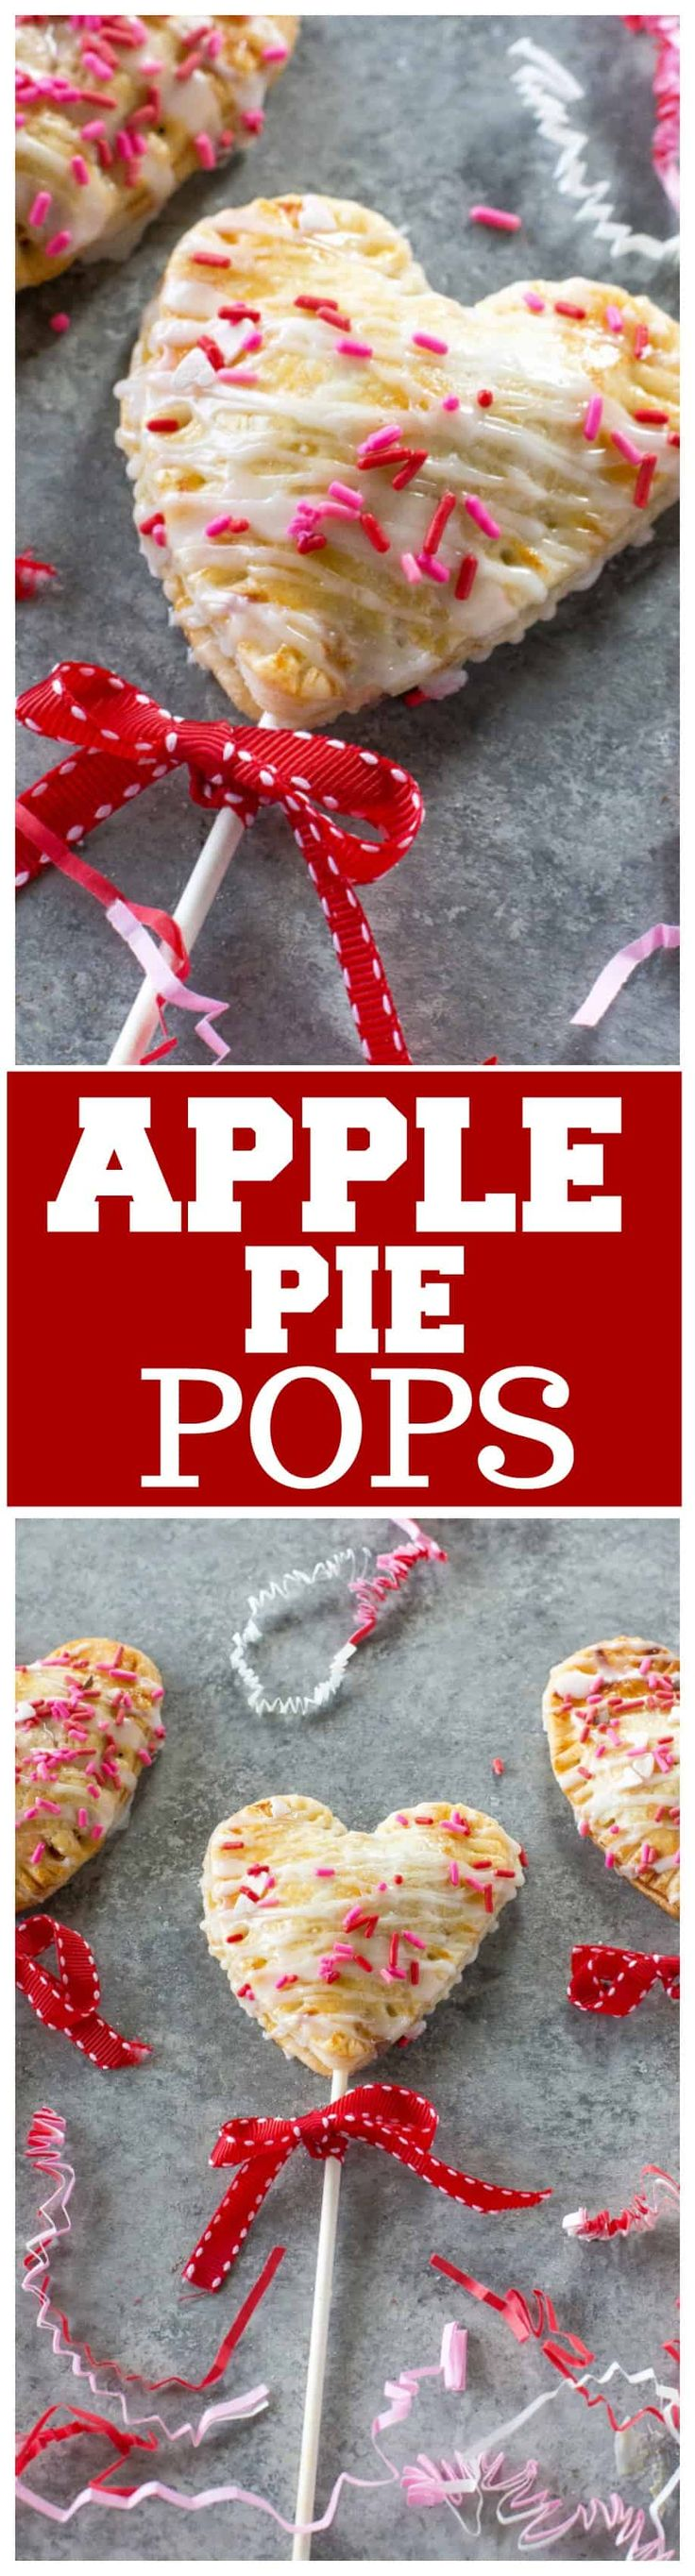 These Apple Pie Pops are heart shaped pies filled with cinnamon apples and drizzled with a powdered sugar glaze. Wrap them up with a bow for a cute Valentine's Day treat for a friend. the-girl-who-ate-everything.com